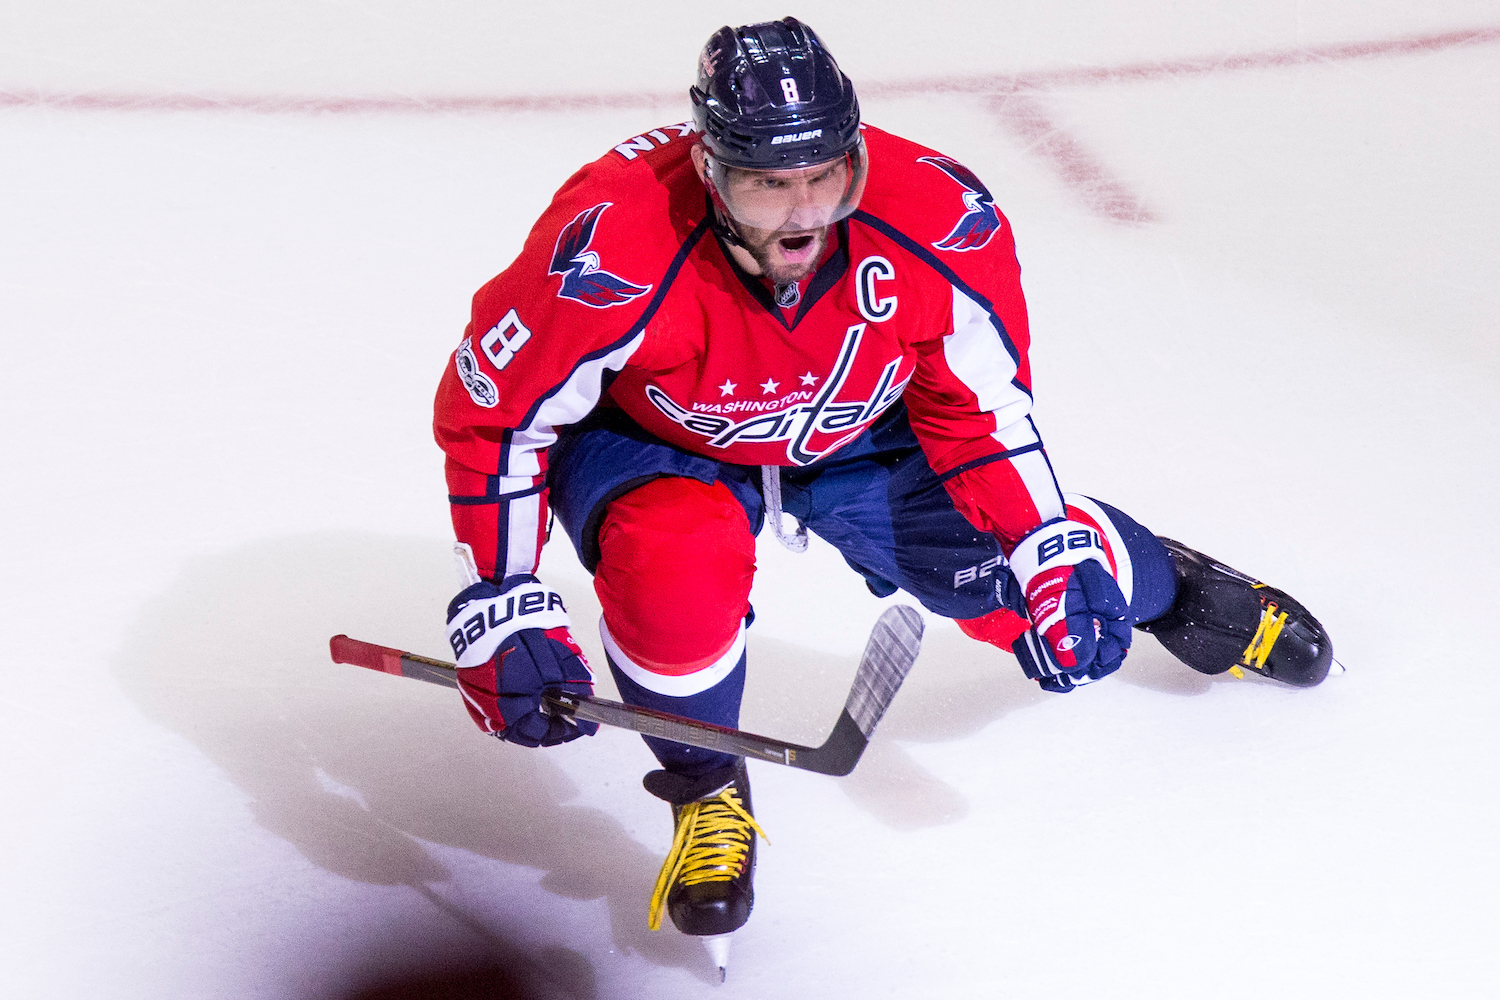 Ovechkin nets 690th career goal, tying Lemieux for 10th all